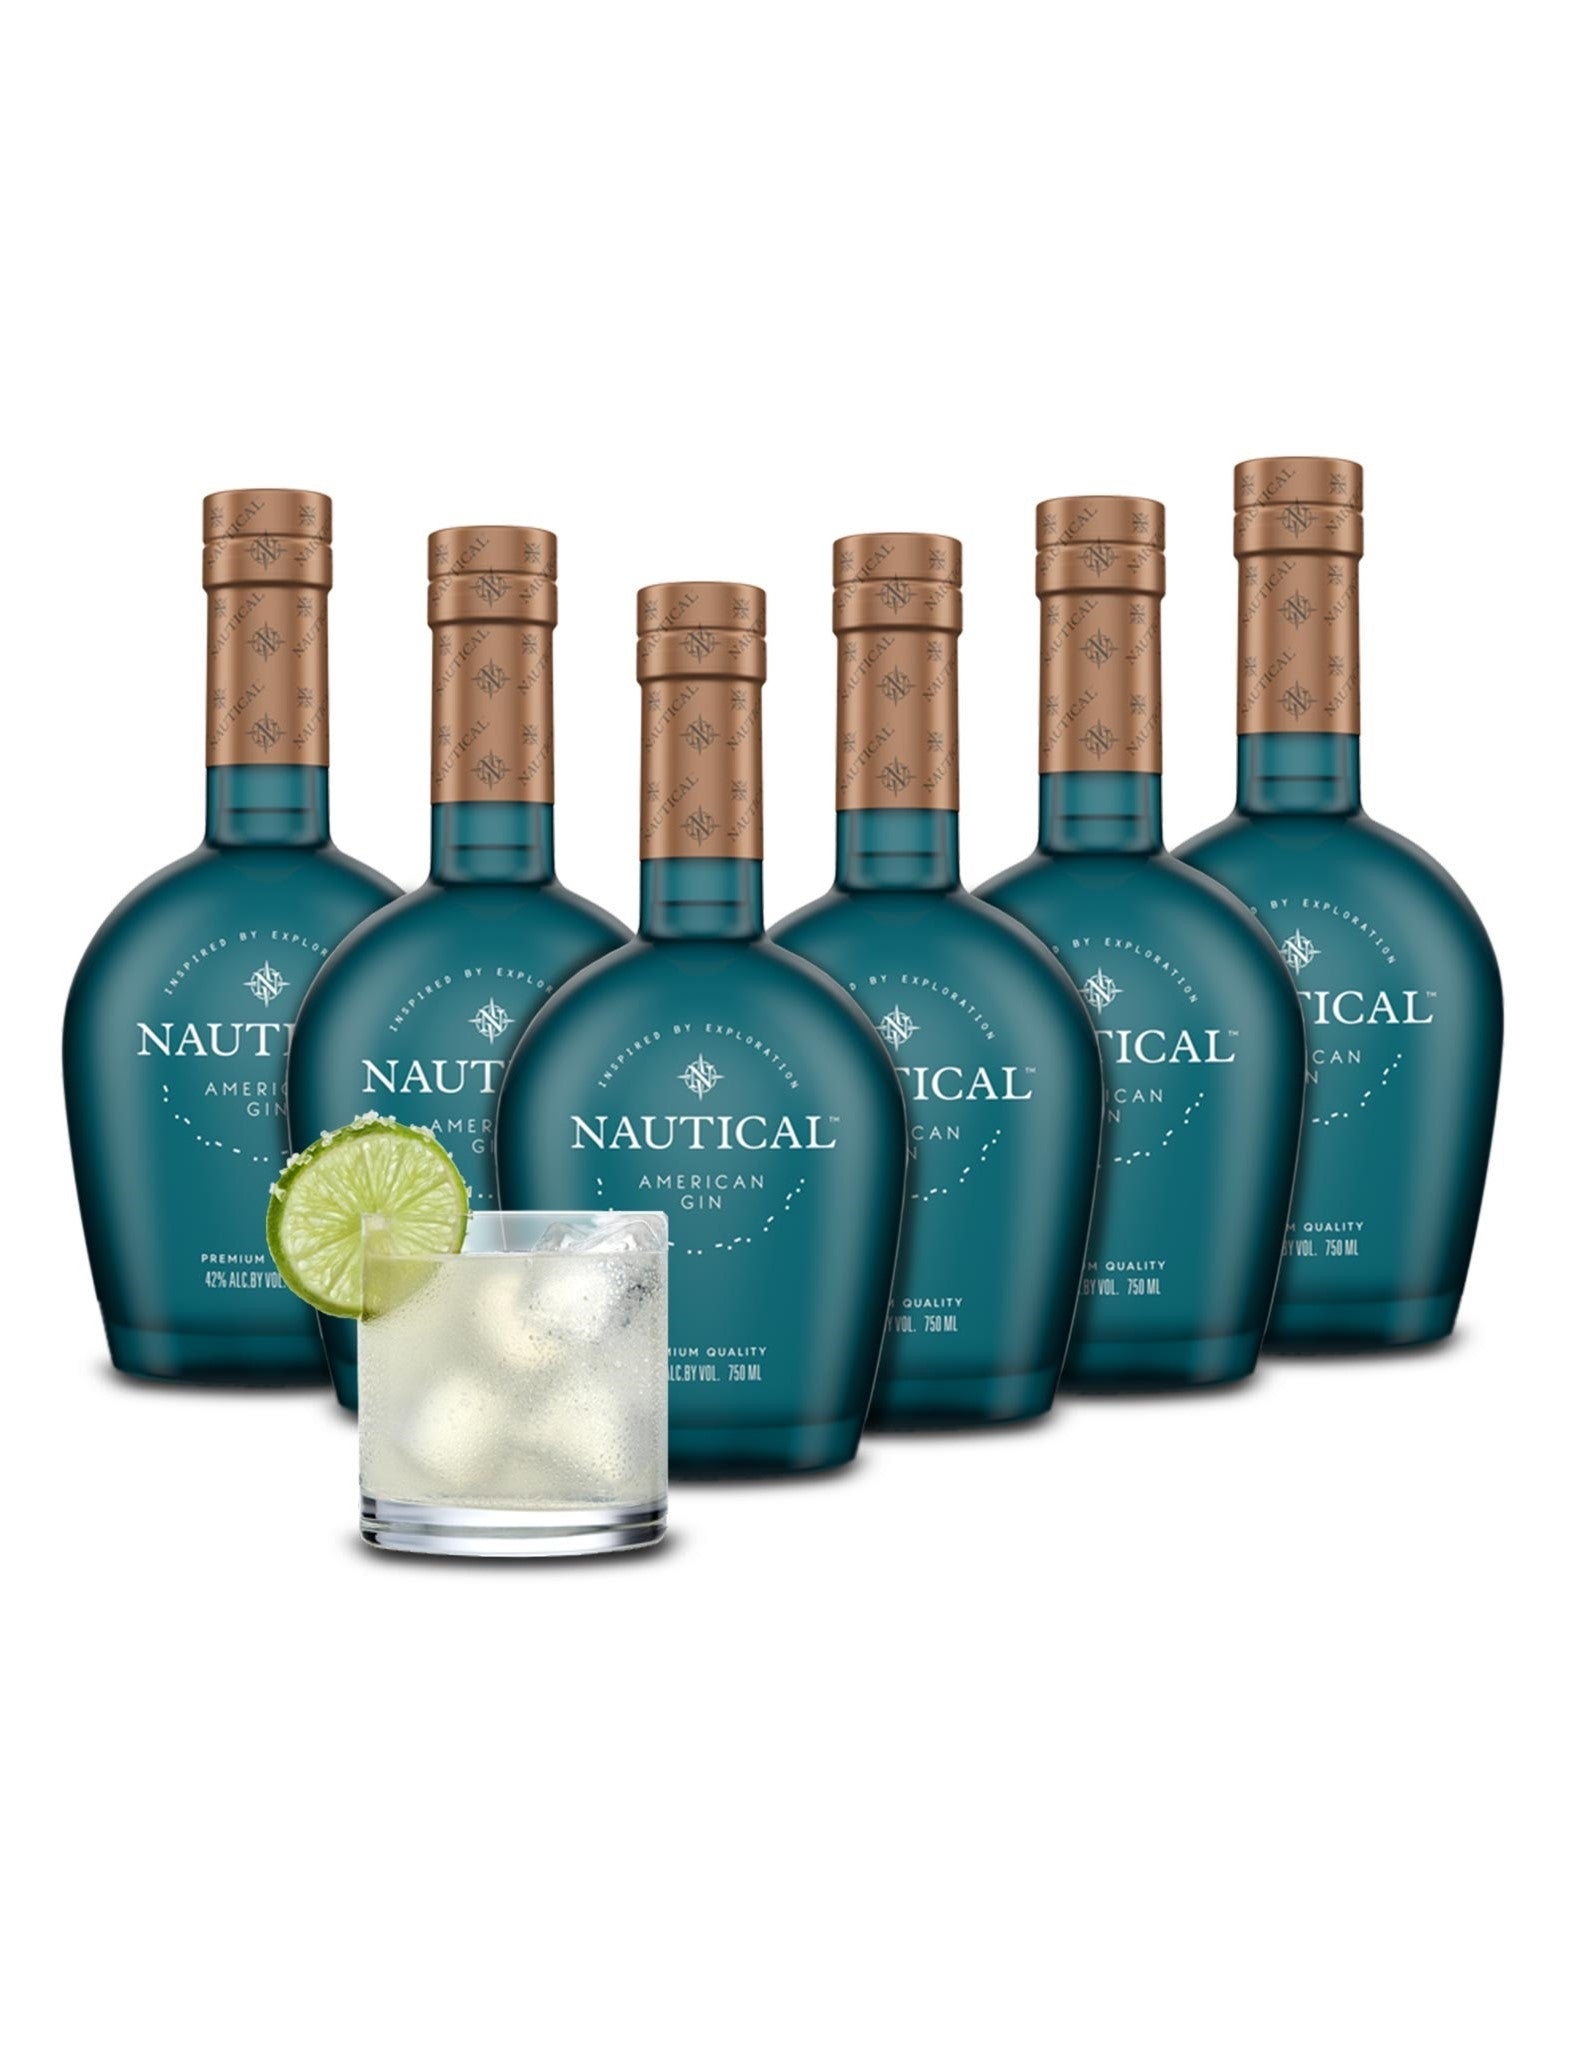 Nautical American Gin 6-Pack Case